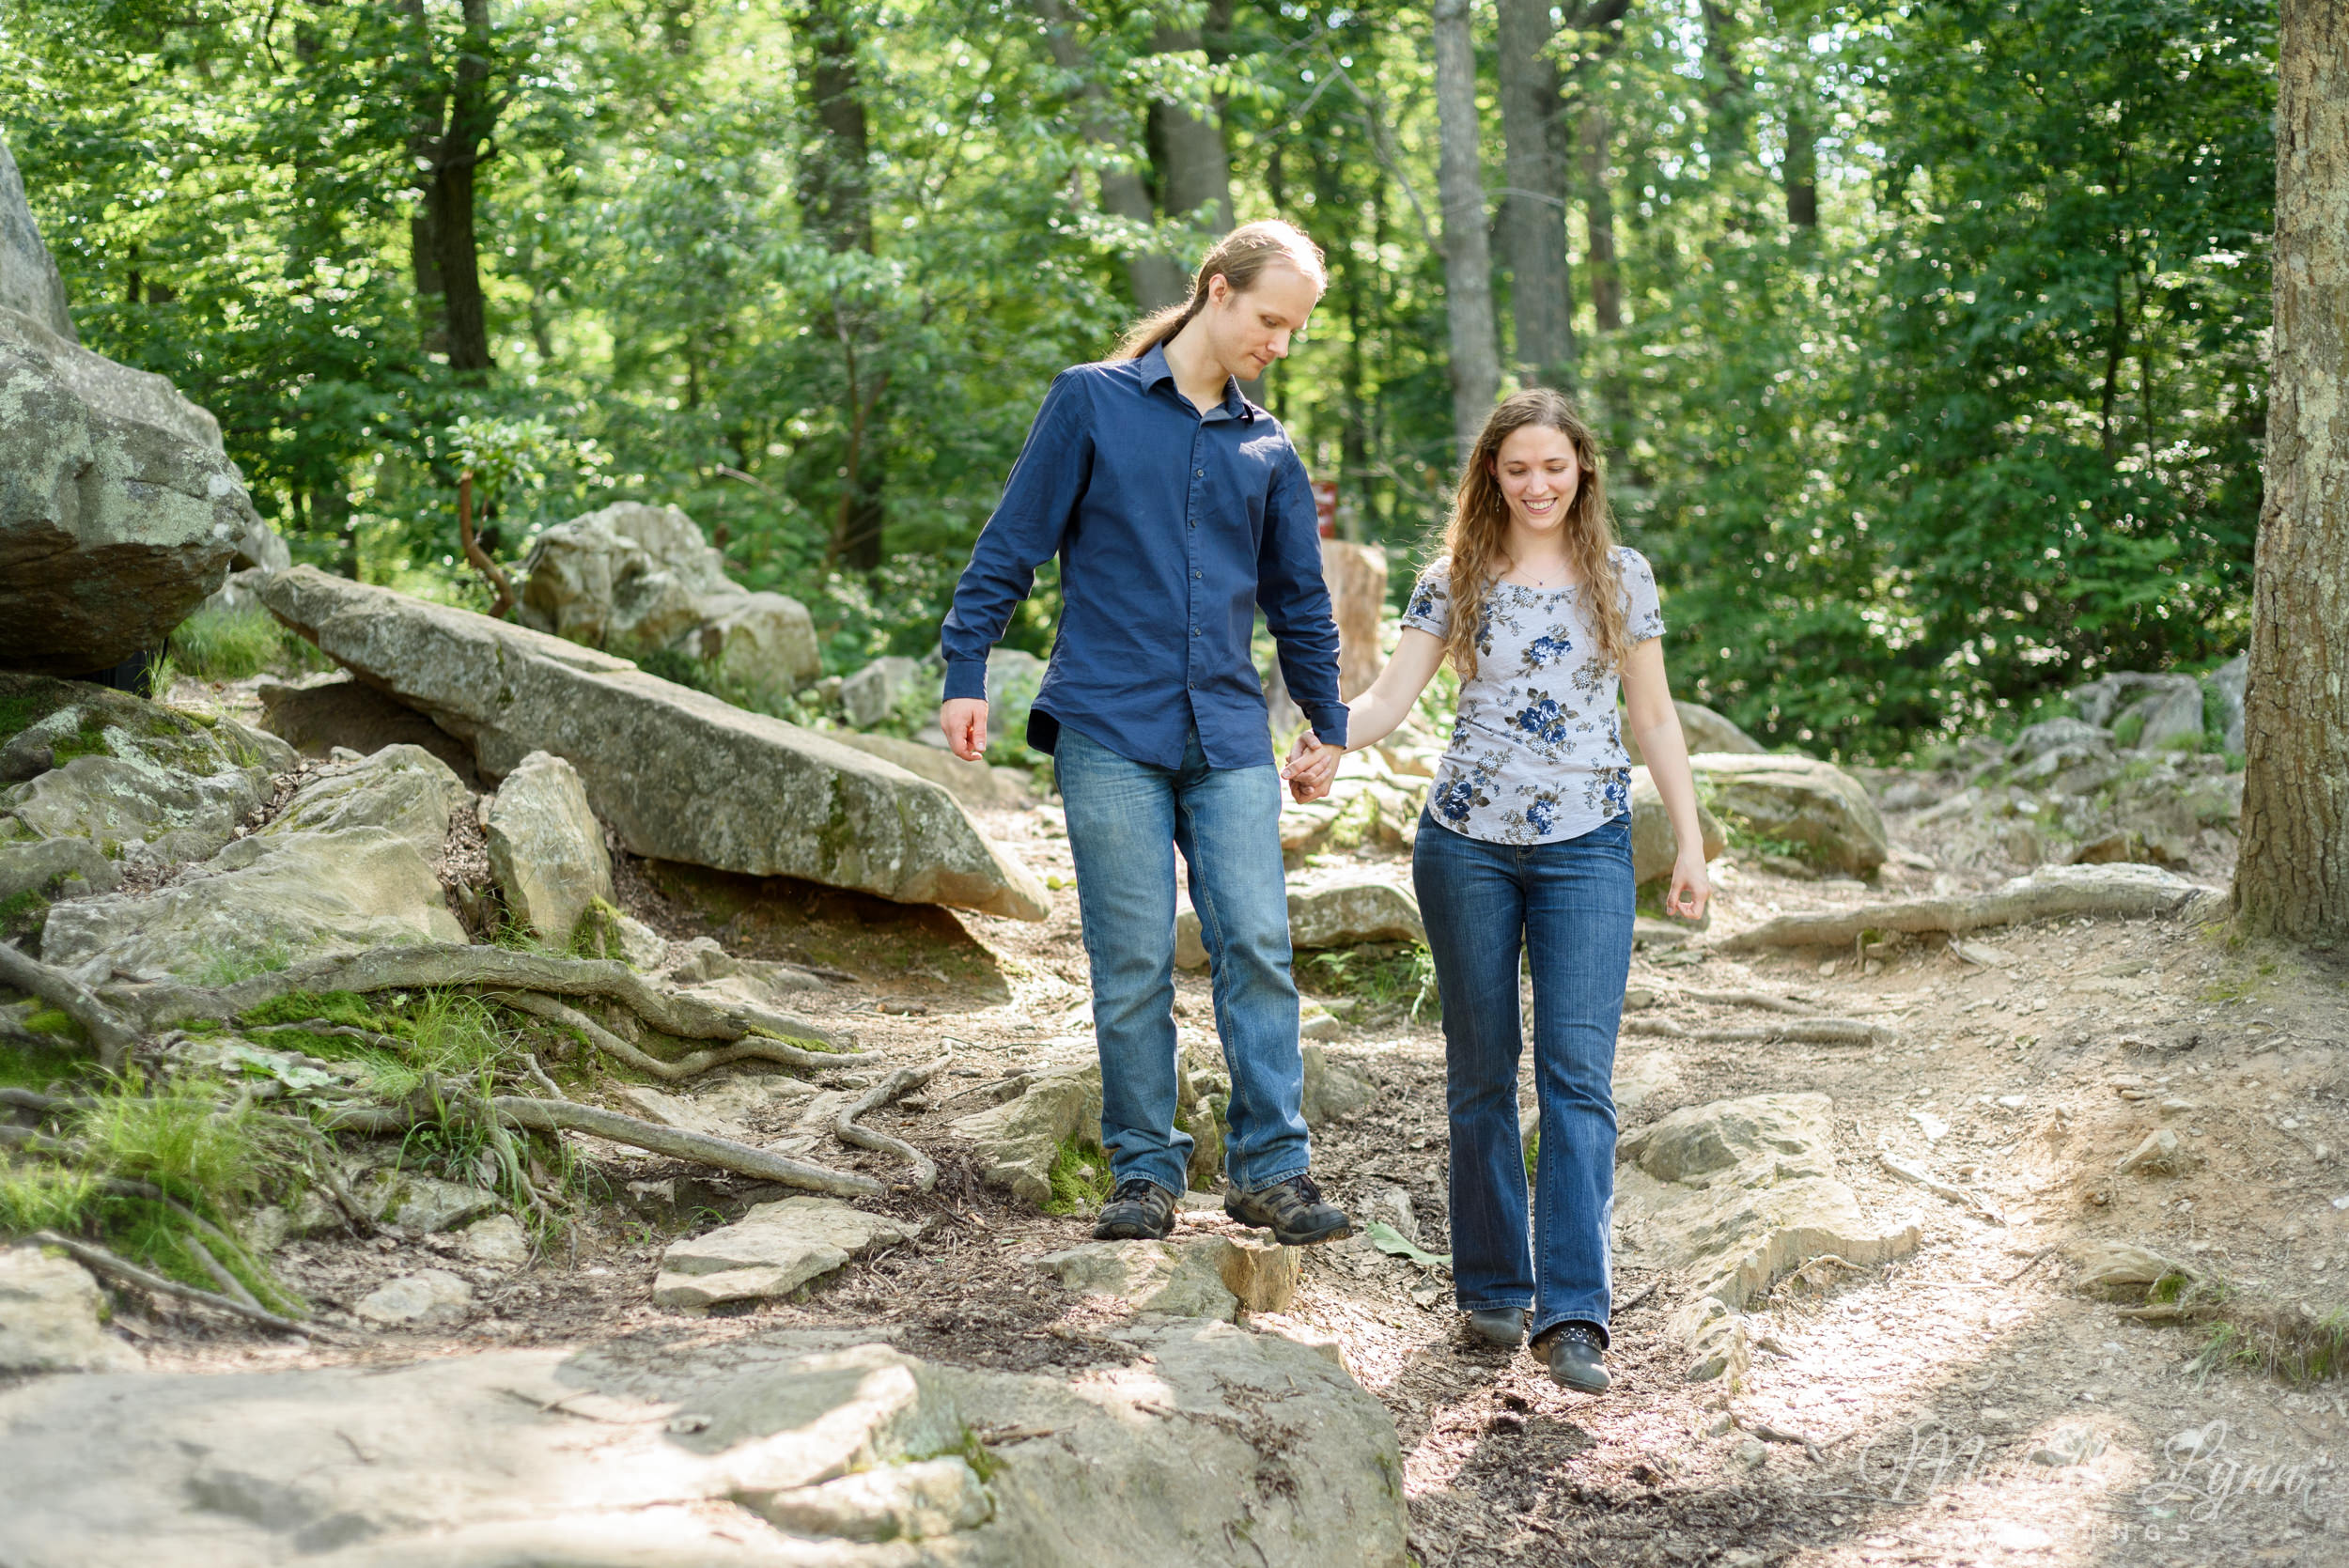 mlw-rocks-state-park-maryland-engagement-photos-10.jpg